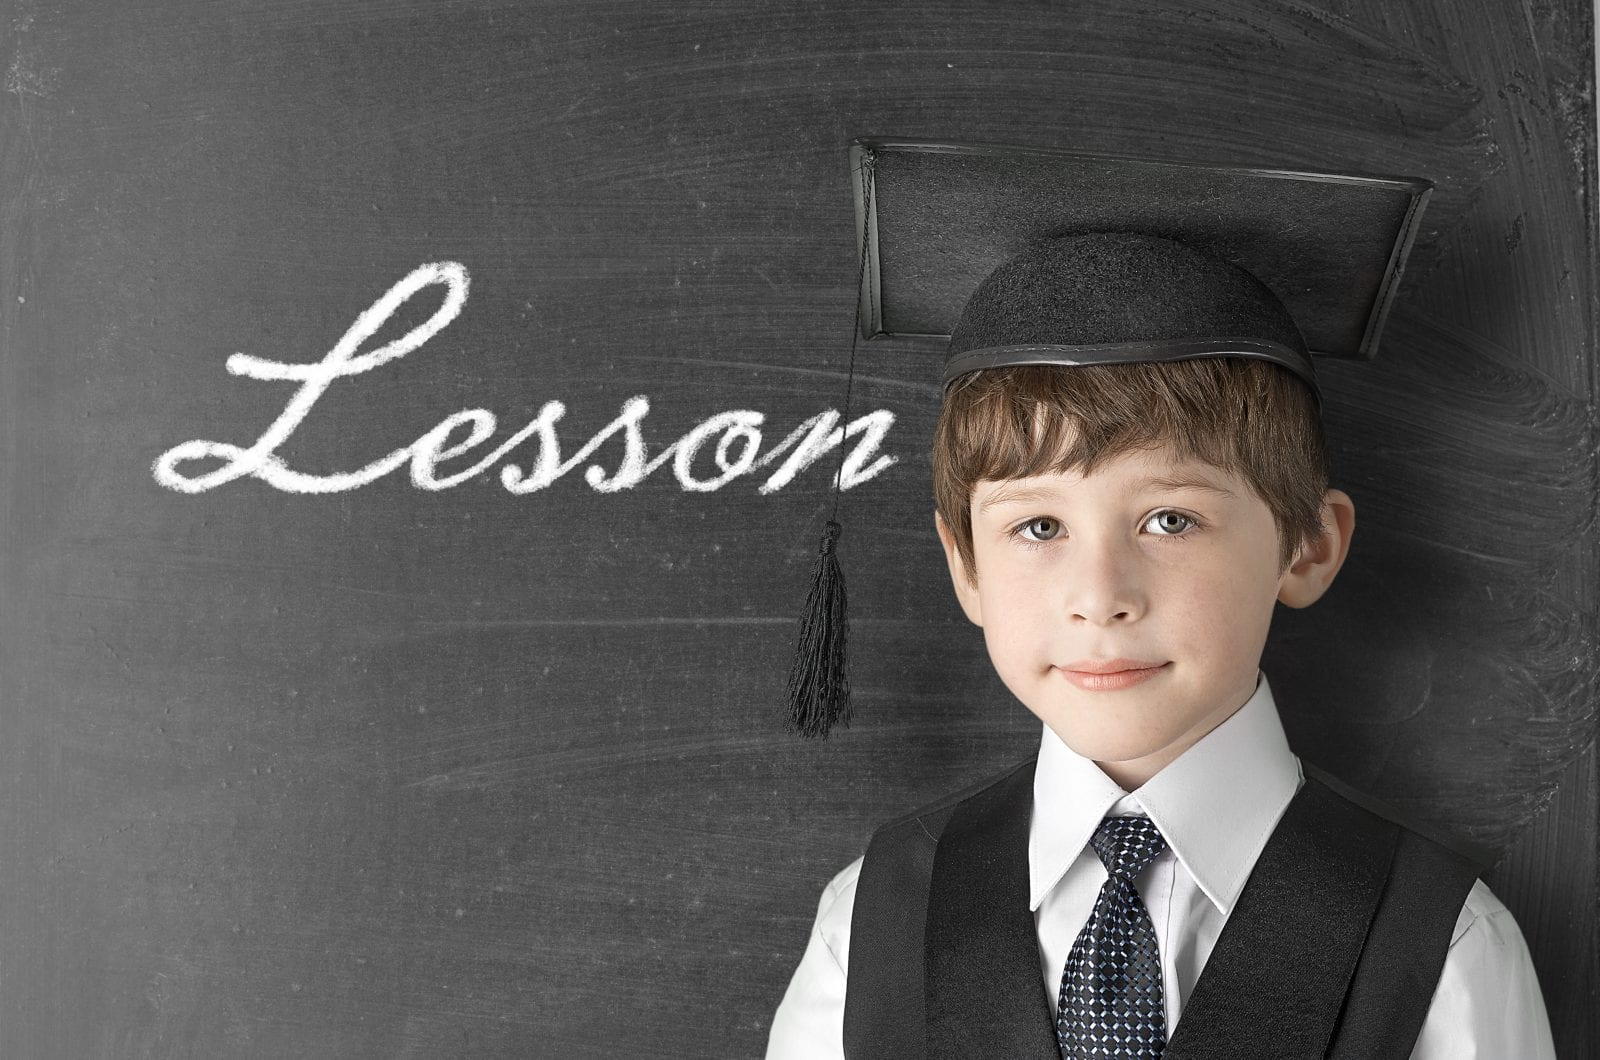 finding an education solution